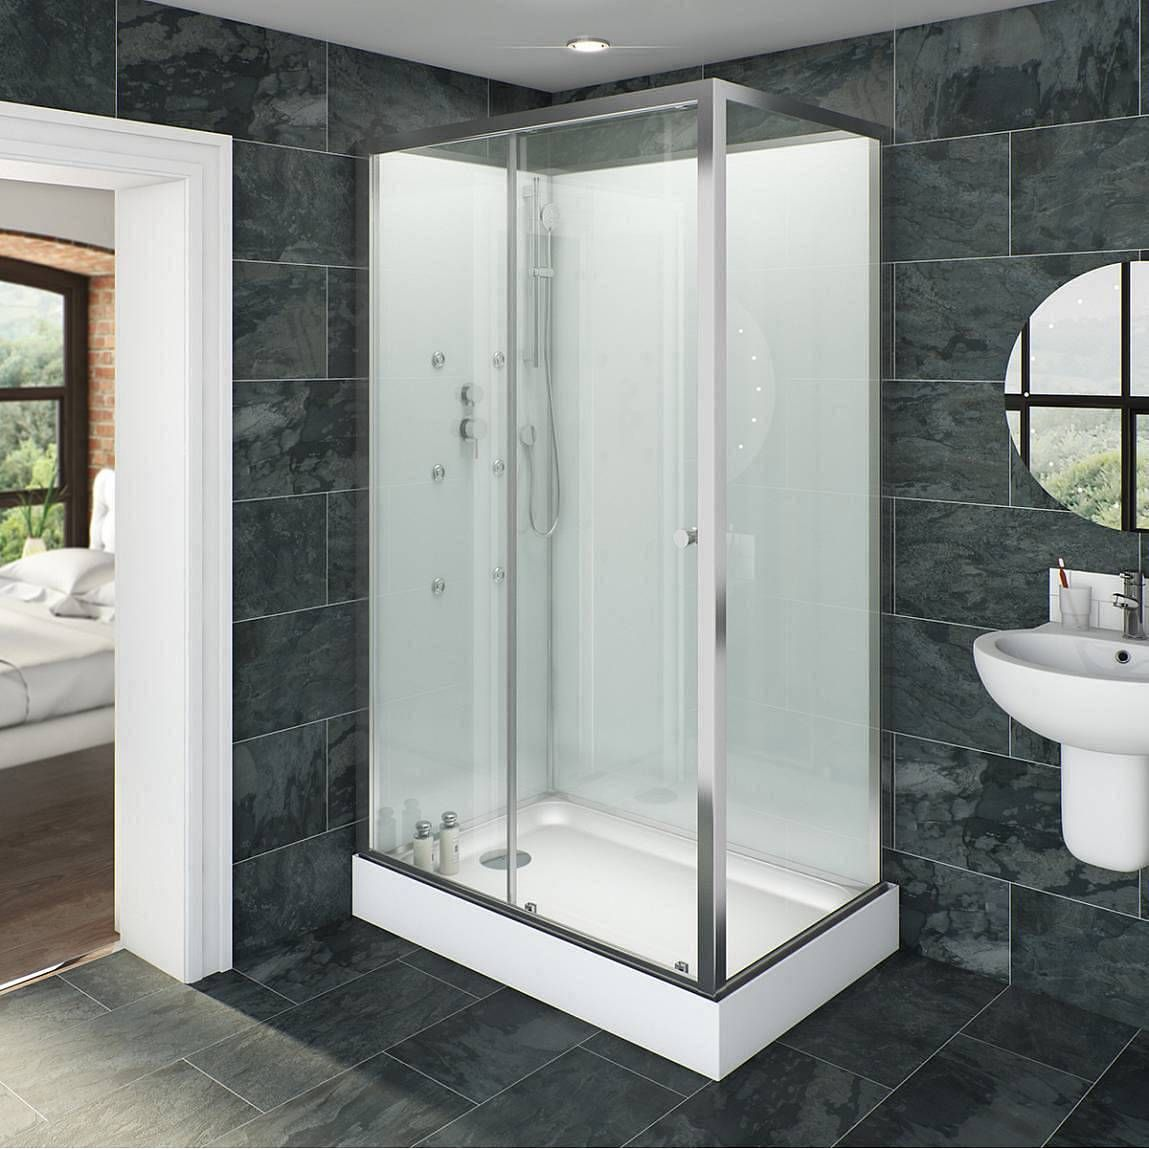 Shower cabin small bathroom - Like This Shower Enclosure With Shower Accessories At Victoria Plum